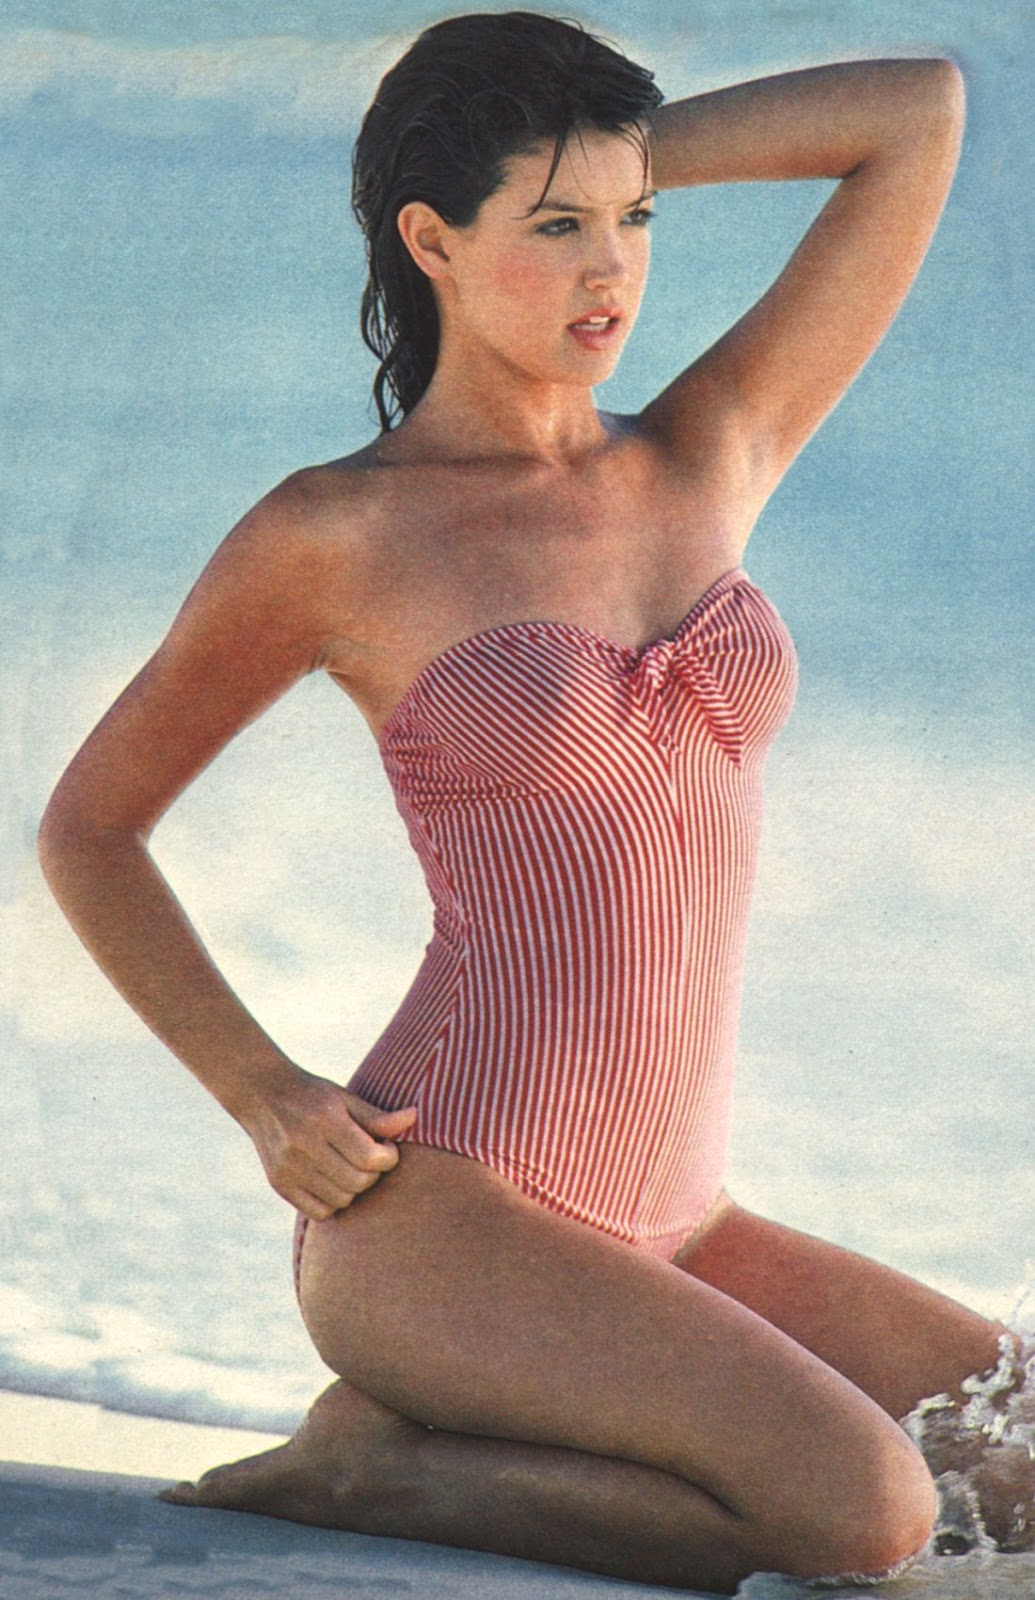 phoebe-cates-celebs-in-swimwear-13687956-1100-1700